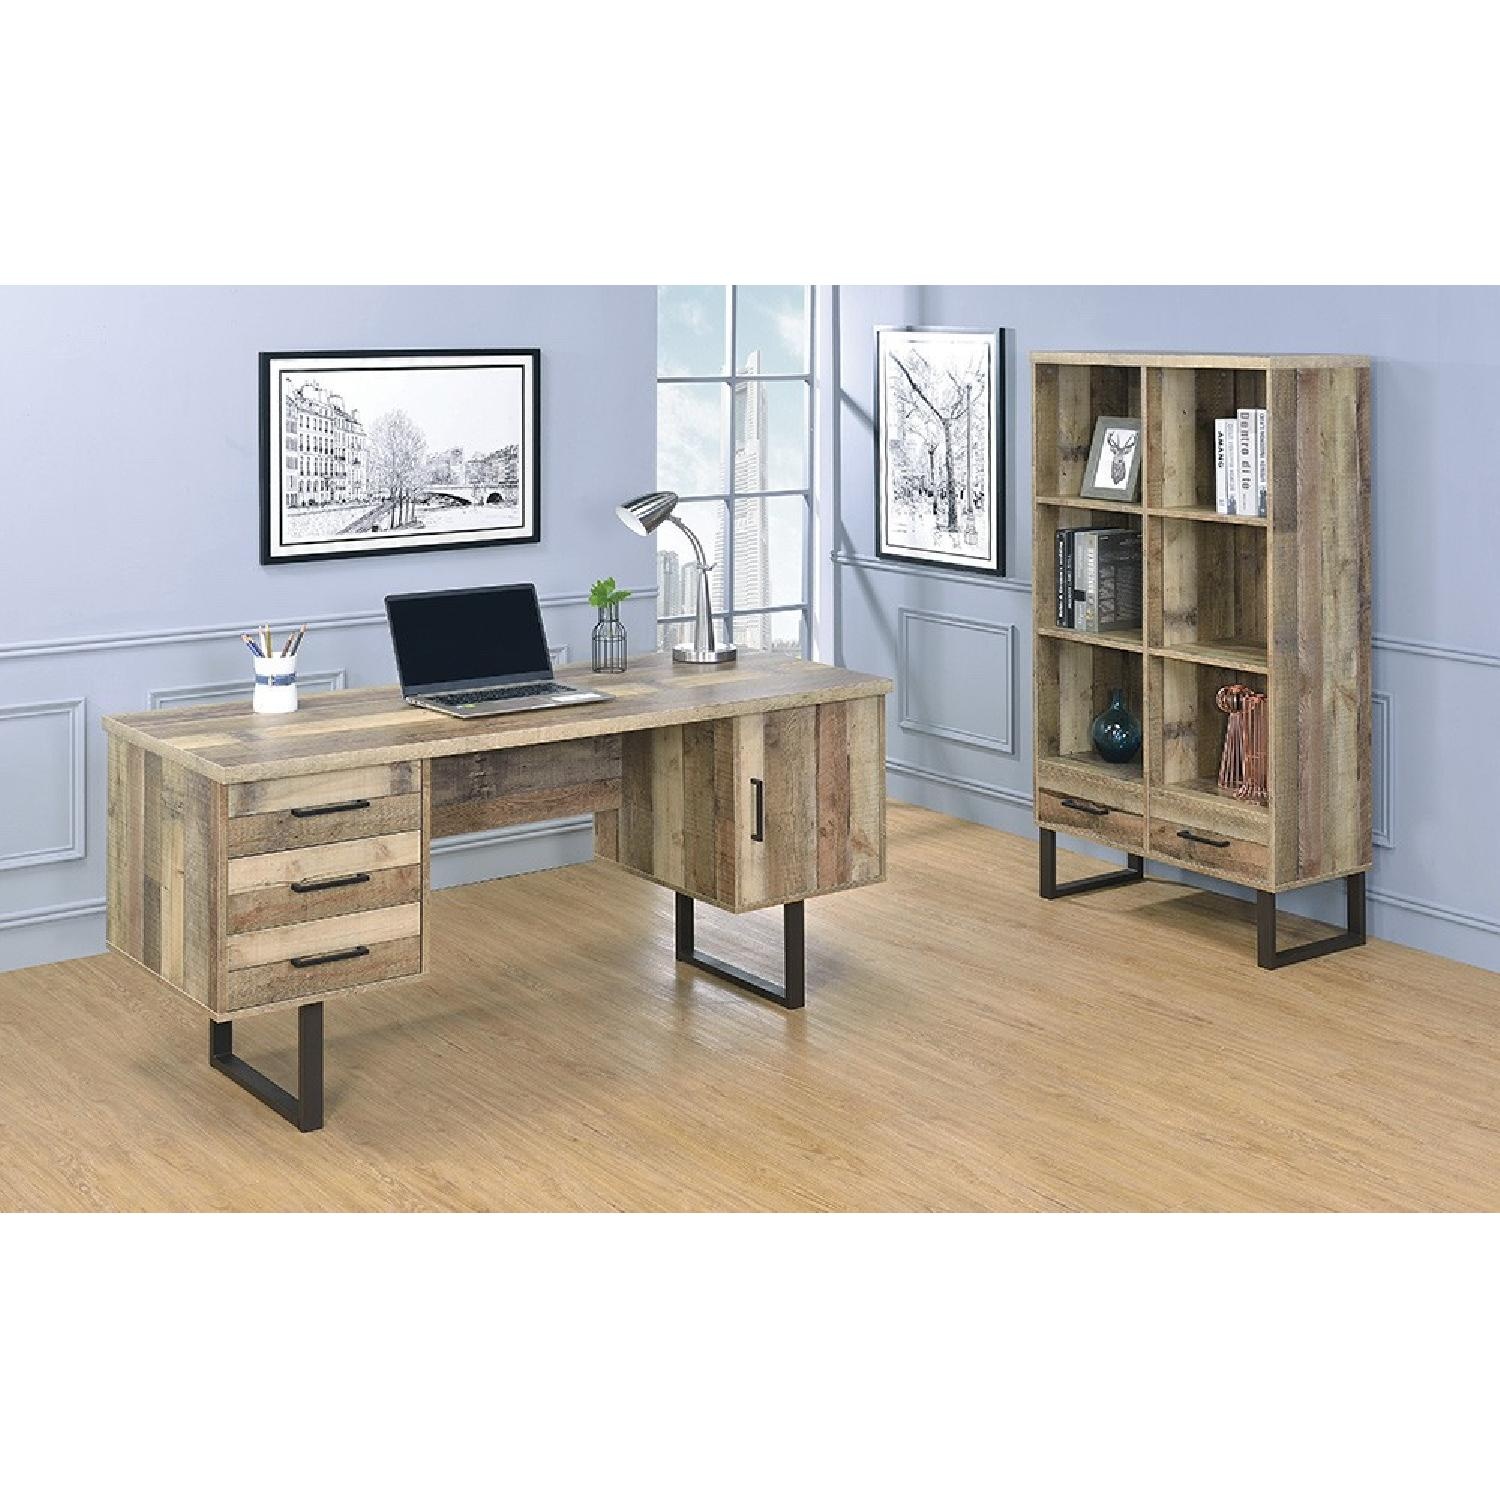 Writing Desk in Weathered Pine Finish